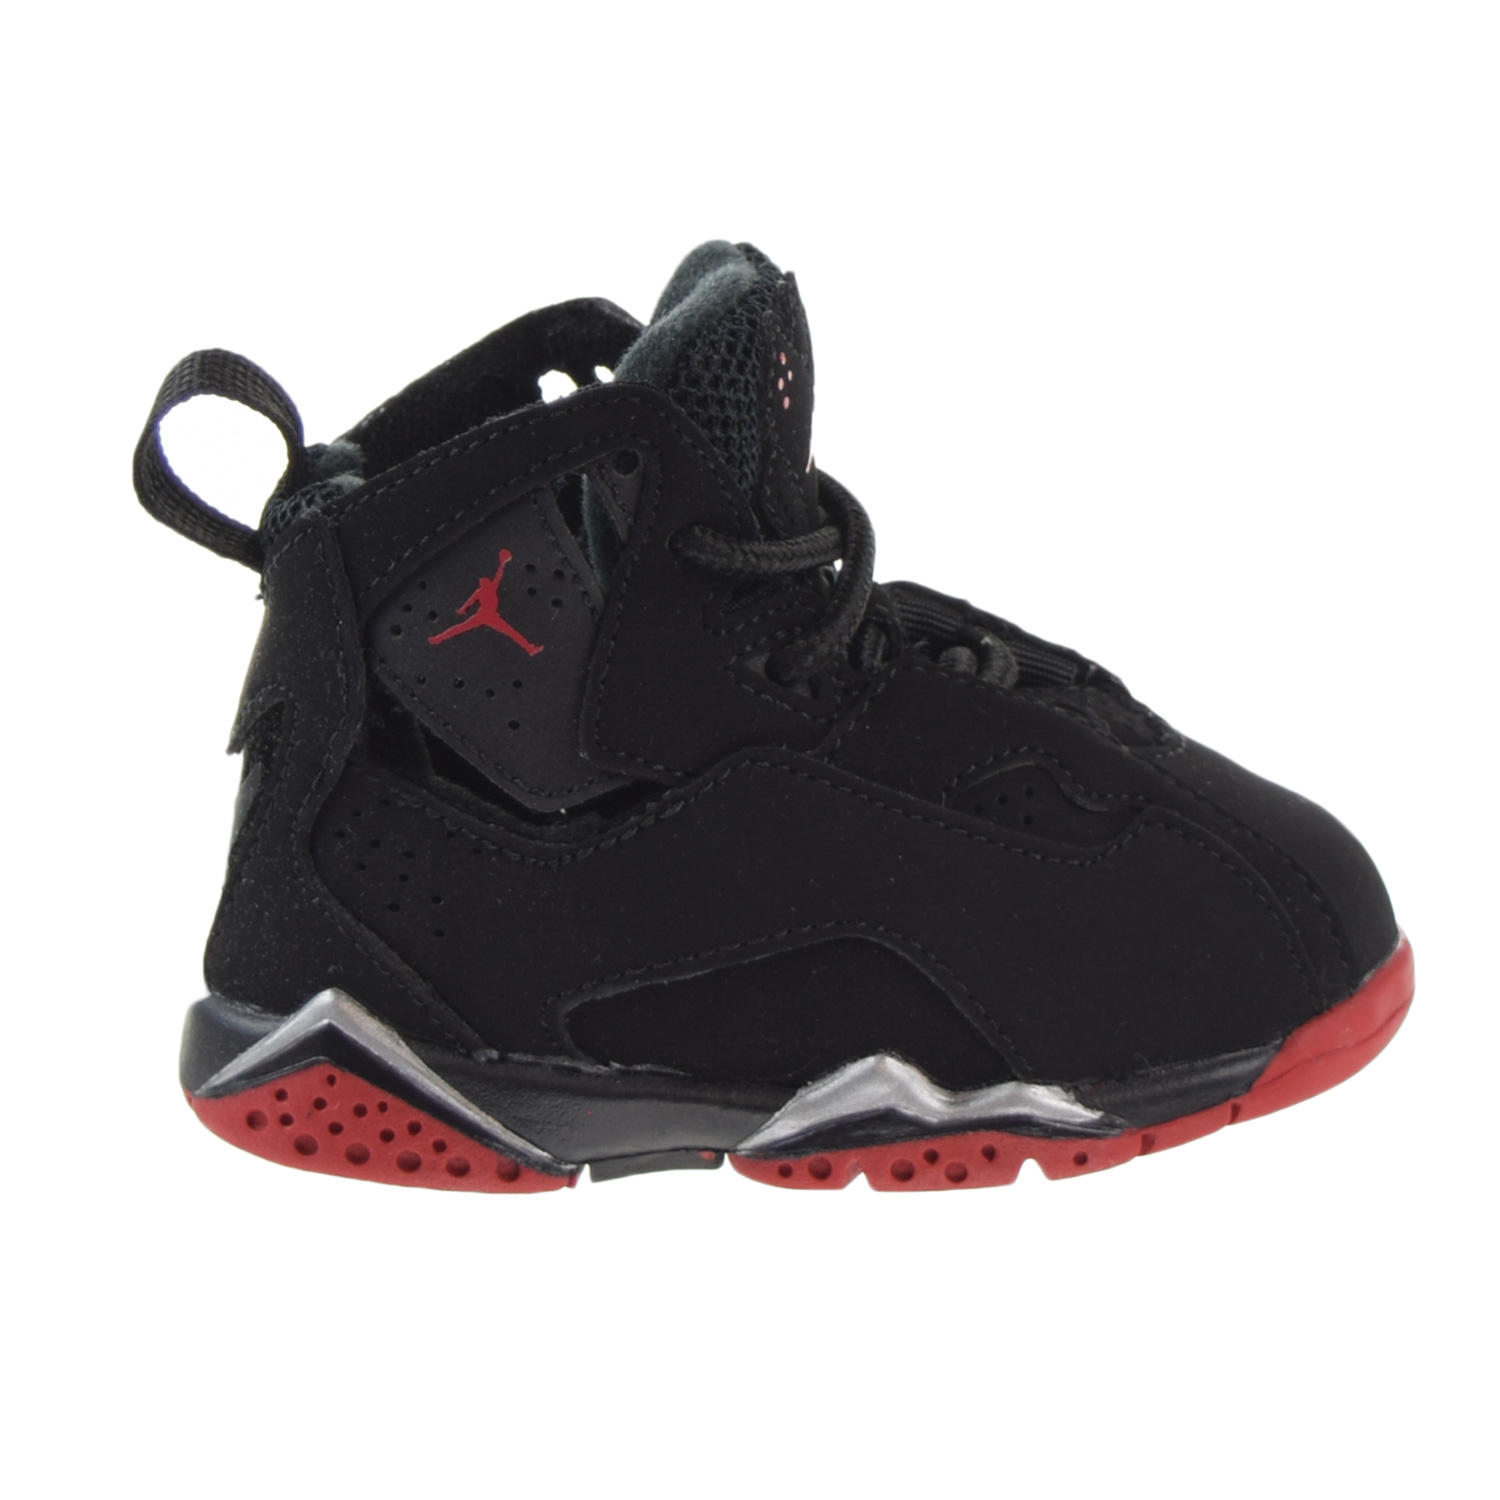 save off fcc35 75403 ... cheap jordan true flight bt toddlers shoes black gym red metallic silver  343797 003 6de47 97626